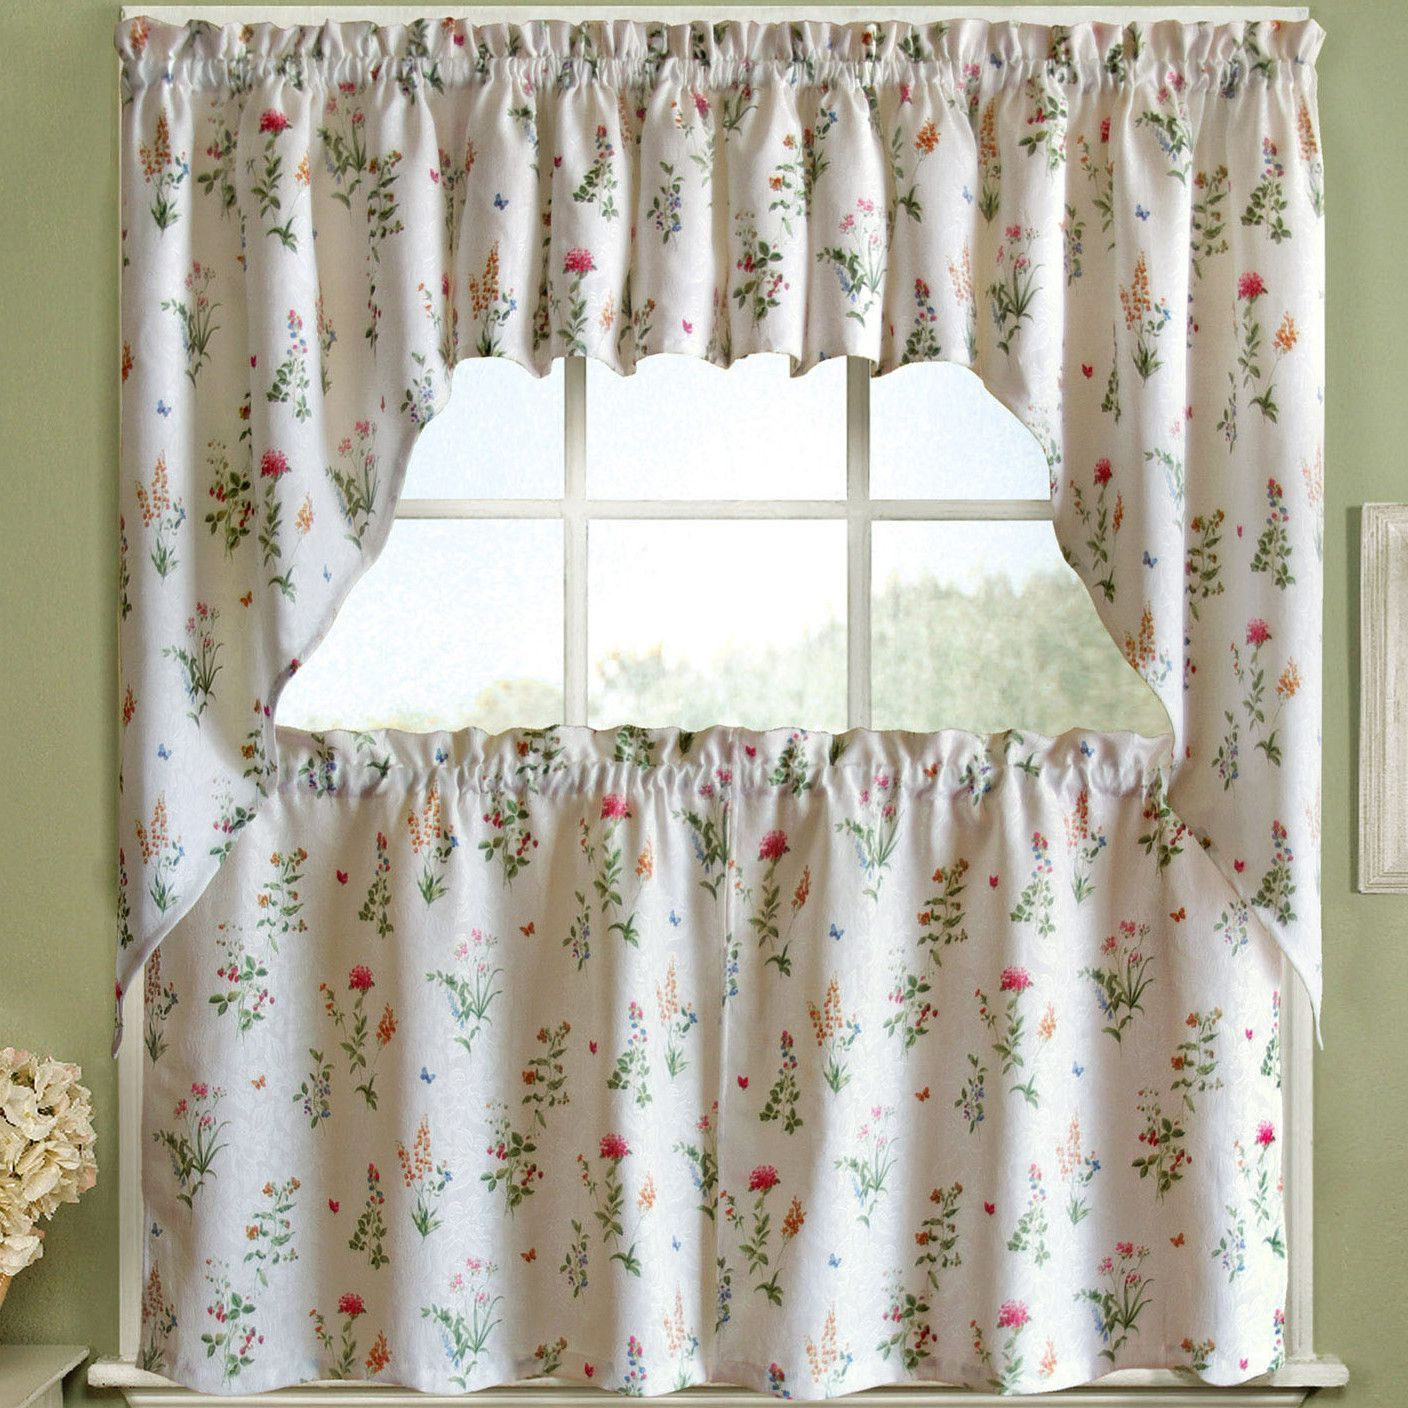 Features Set Includes 2 Curtain Panels Color White And Multi